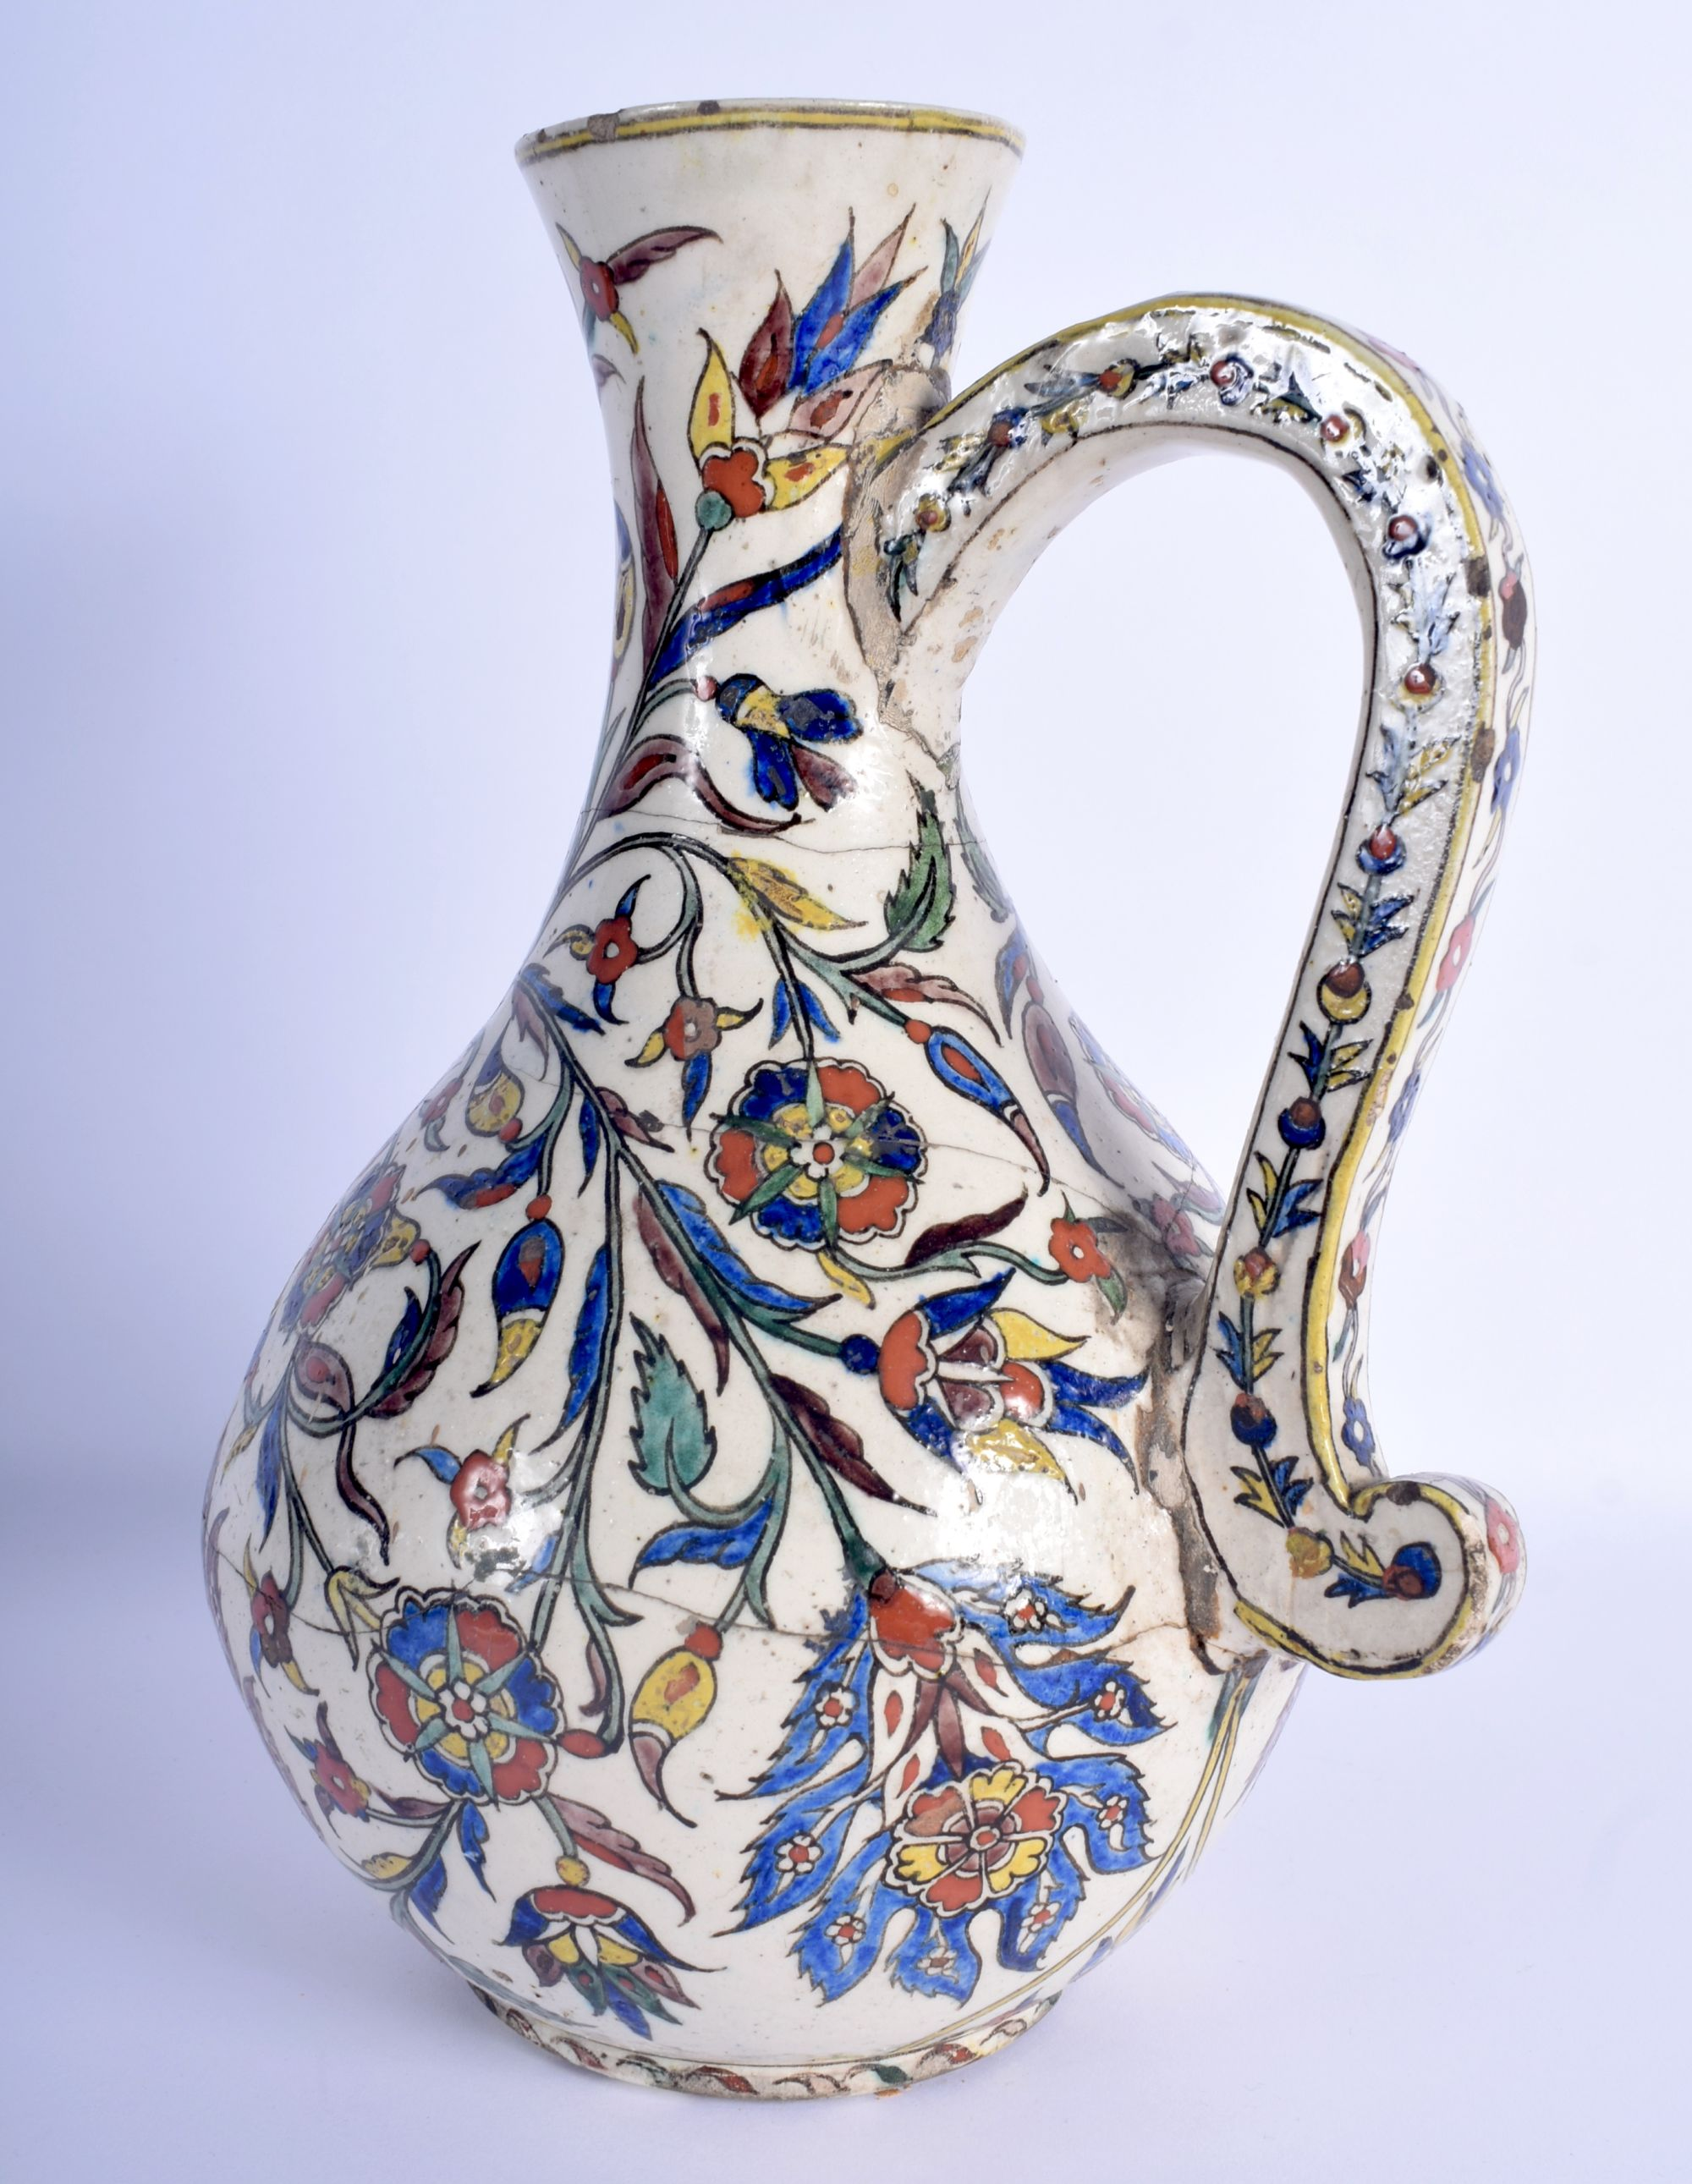 A 19TH CENTURY CONTINENTAL IZNIK FAIENCE GLAZED ENAMELLED JUG possibly Kutahya (Ottoman) painted wit - Image 3 of 4